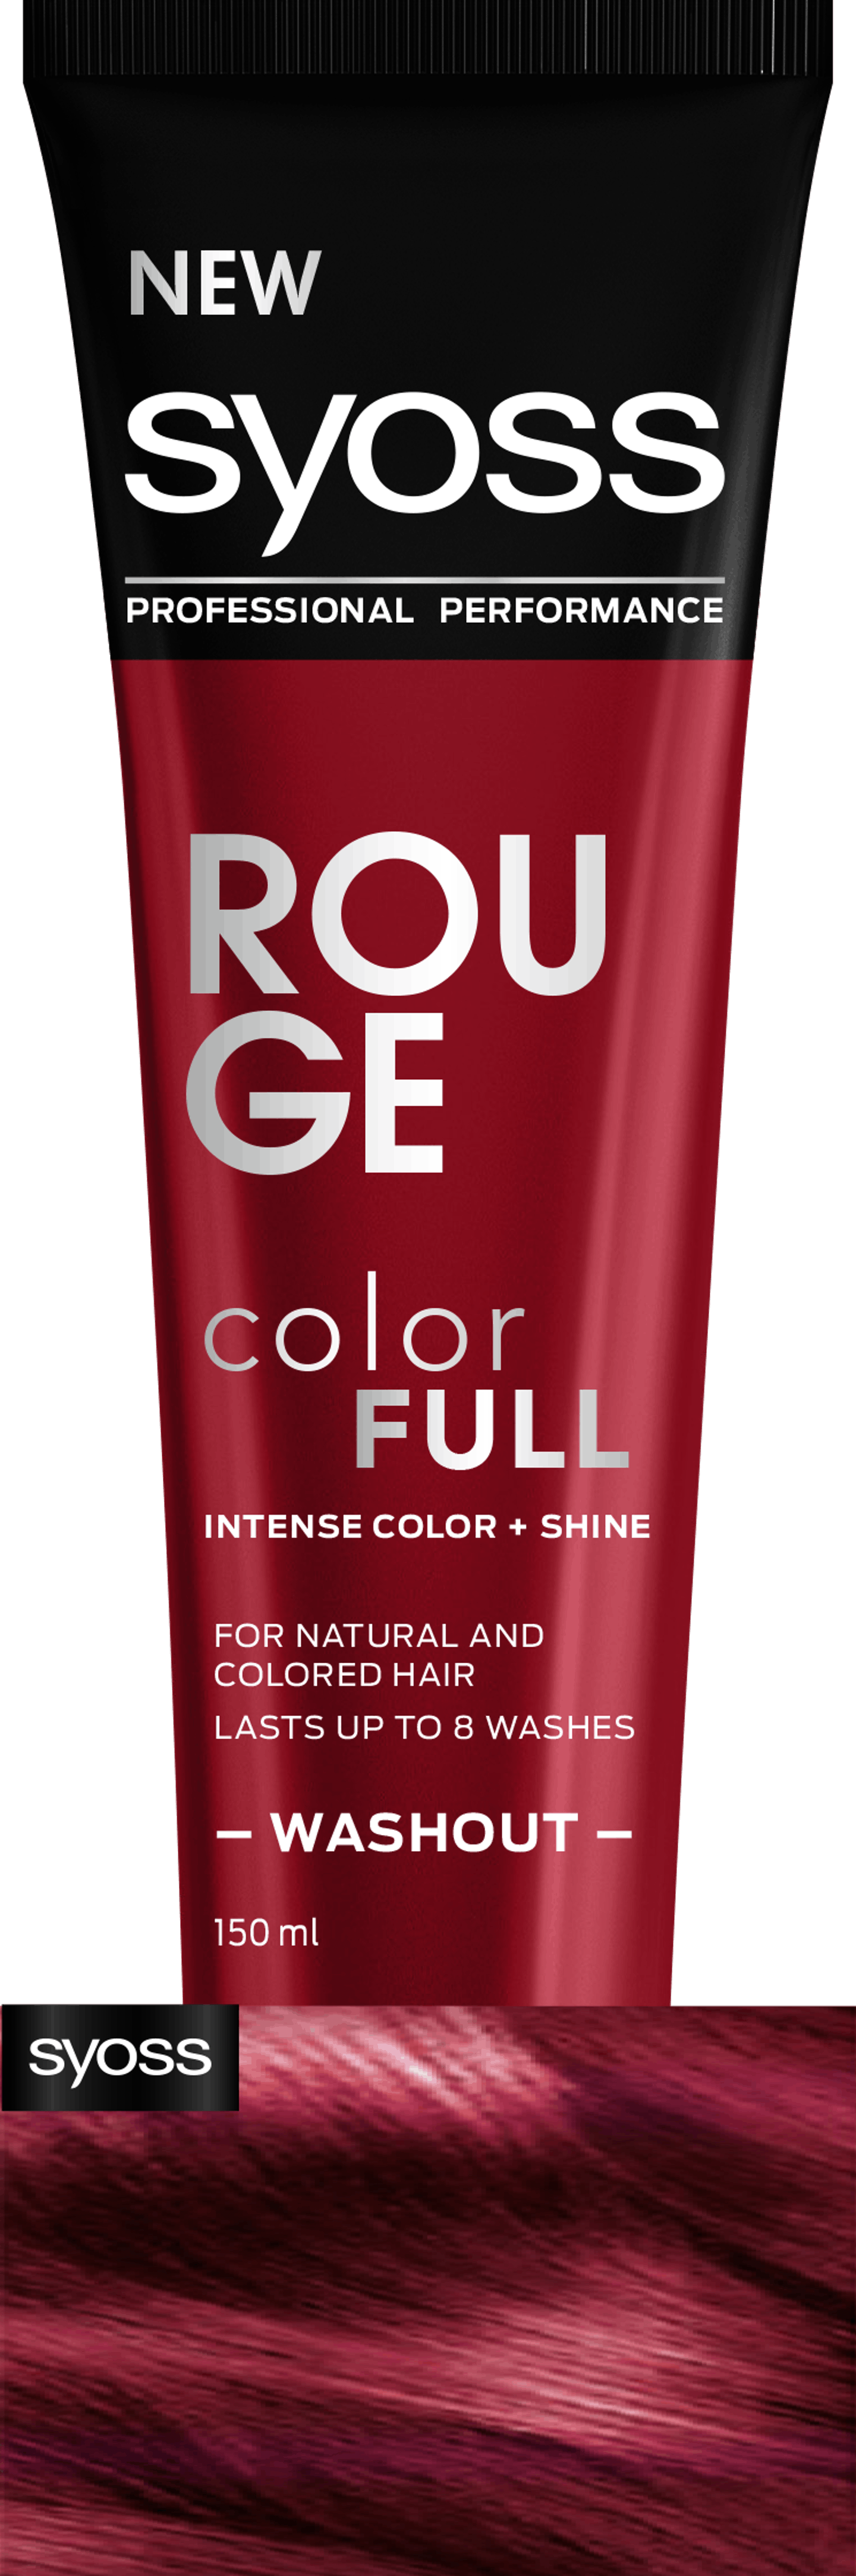 Syoss Rouge Color Full